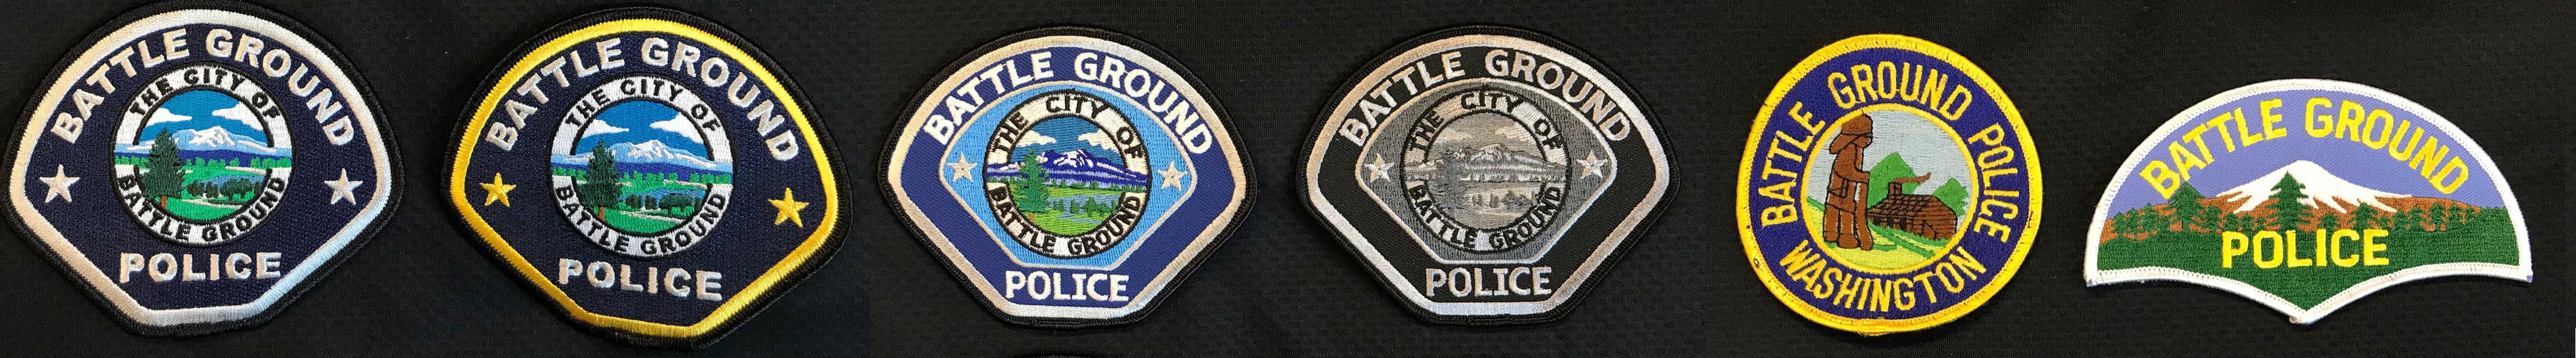 bg-patches